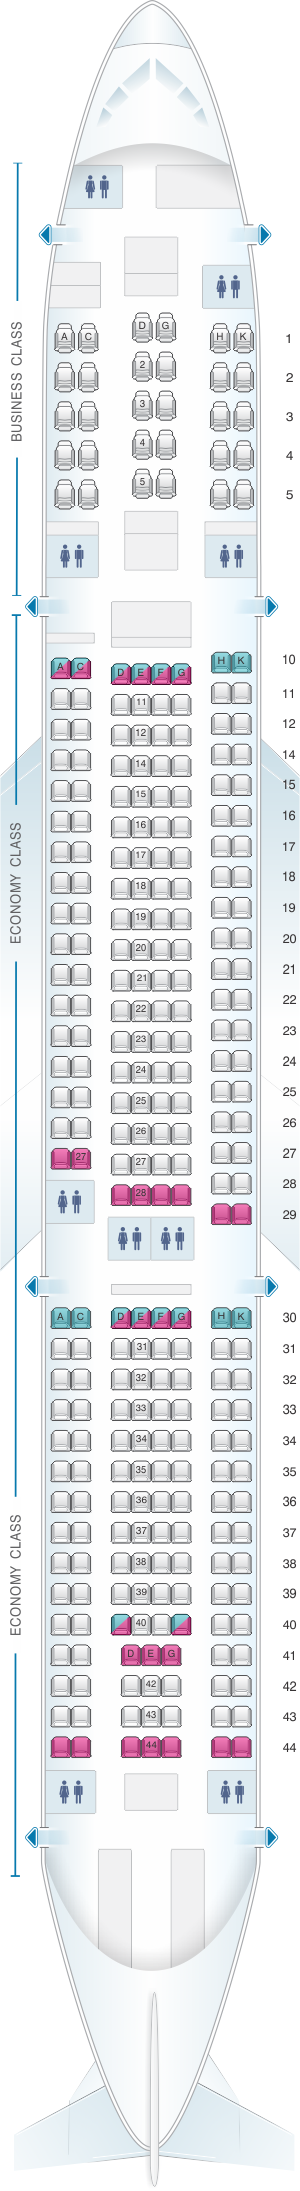 Seat map for Asiana Airlines Airbus A330 300 290PAX